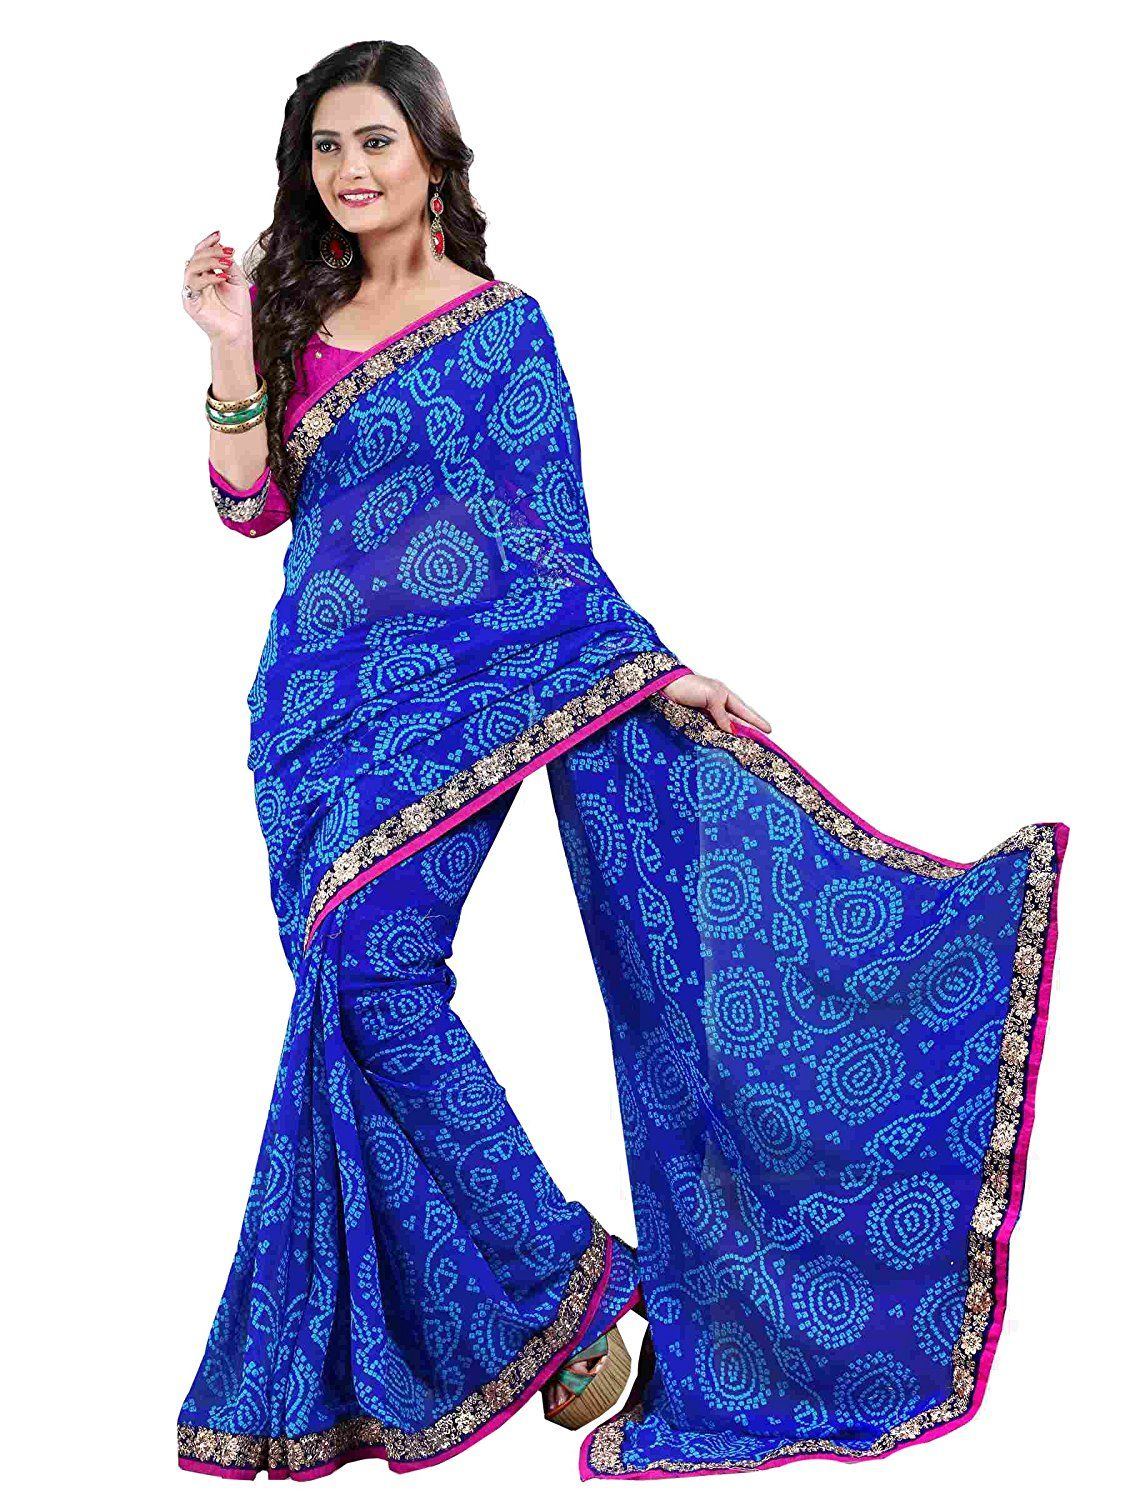 085ce04b49d78c Women s Chiffon Saree (Free Size)  Amazon.in  Clothing   Accessories